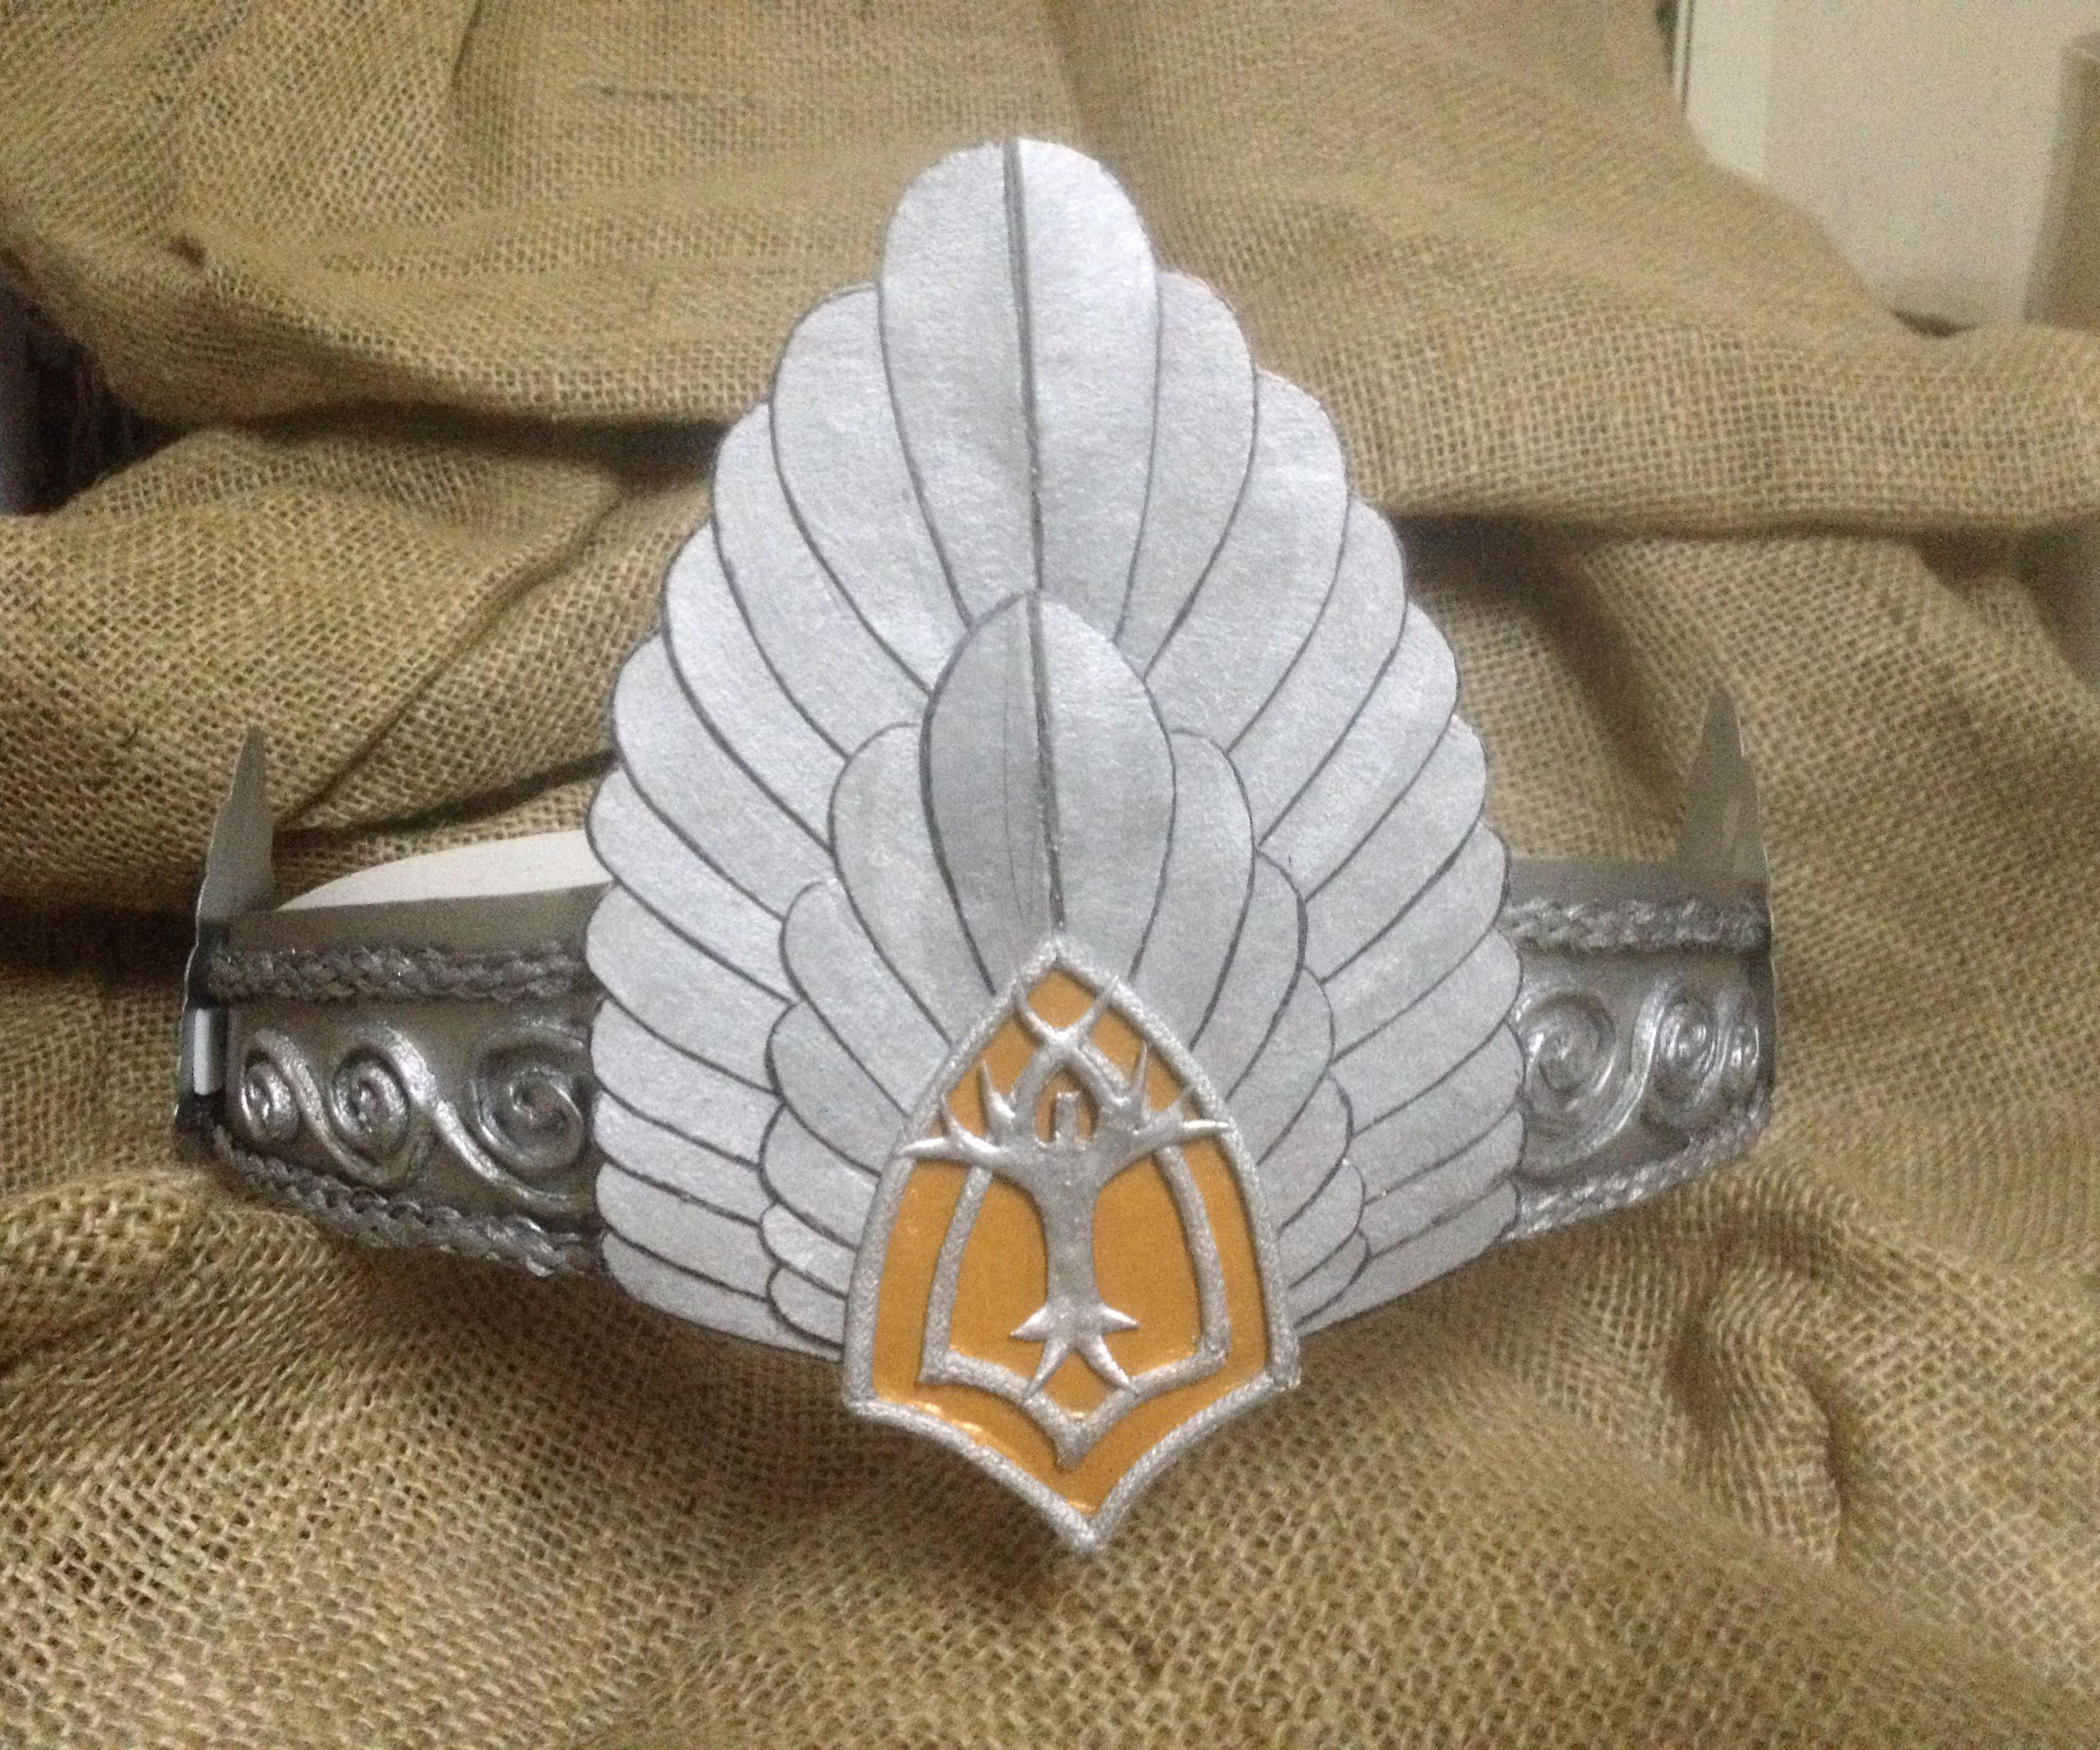 King Aragorn's Coronation Crown